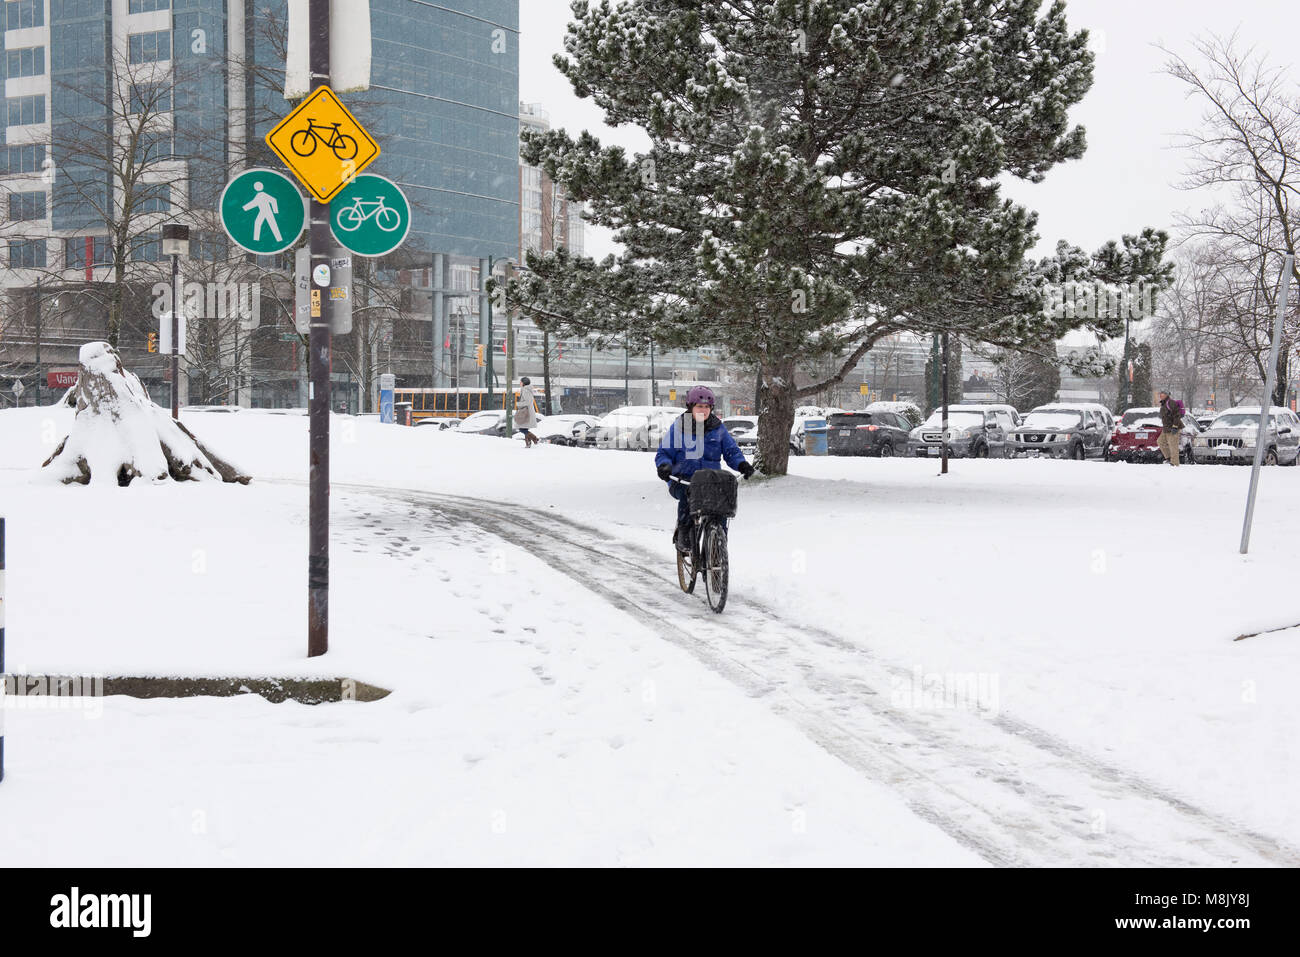 Bicyclist cycling down a snowy bike lane in Vancouver City - Stock Image